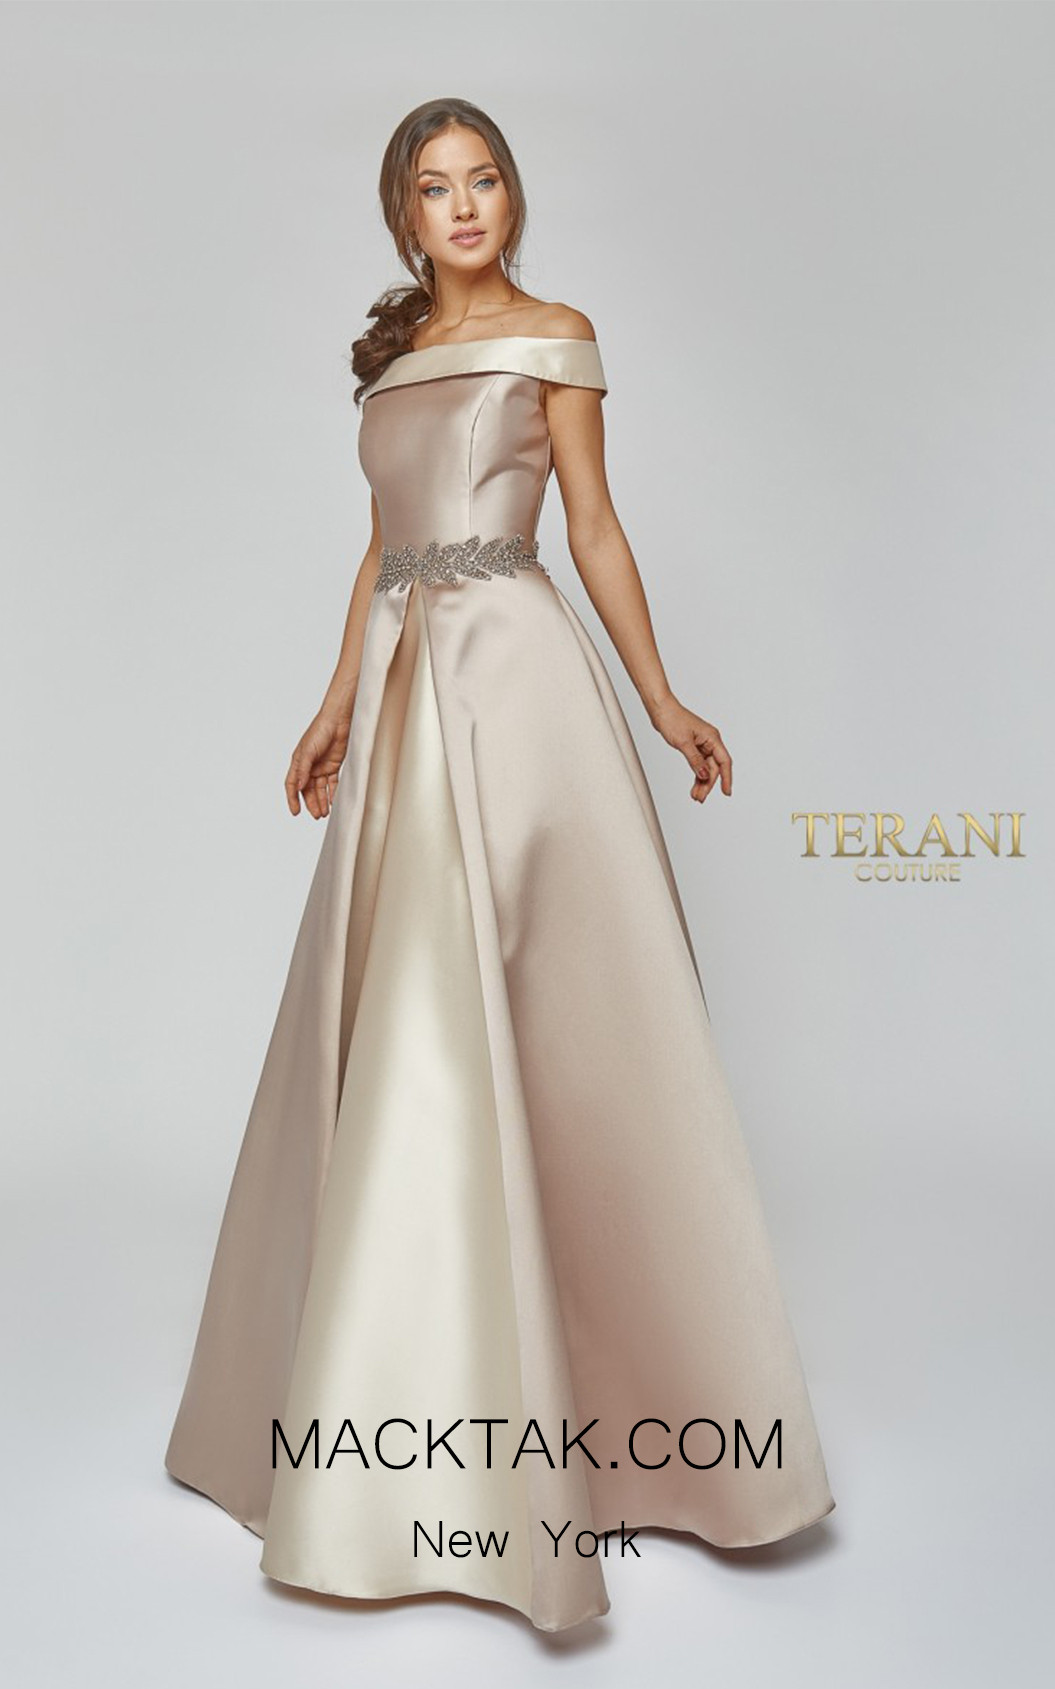 Terani couture 1921M0505 Front Dress